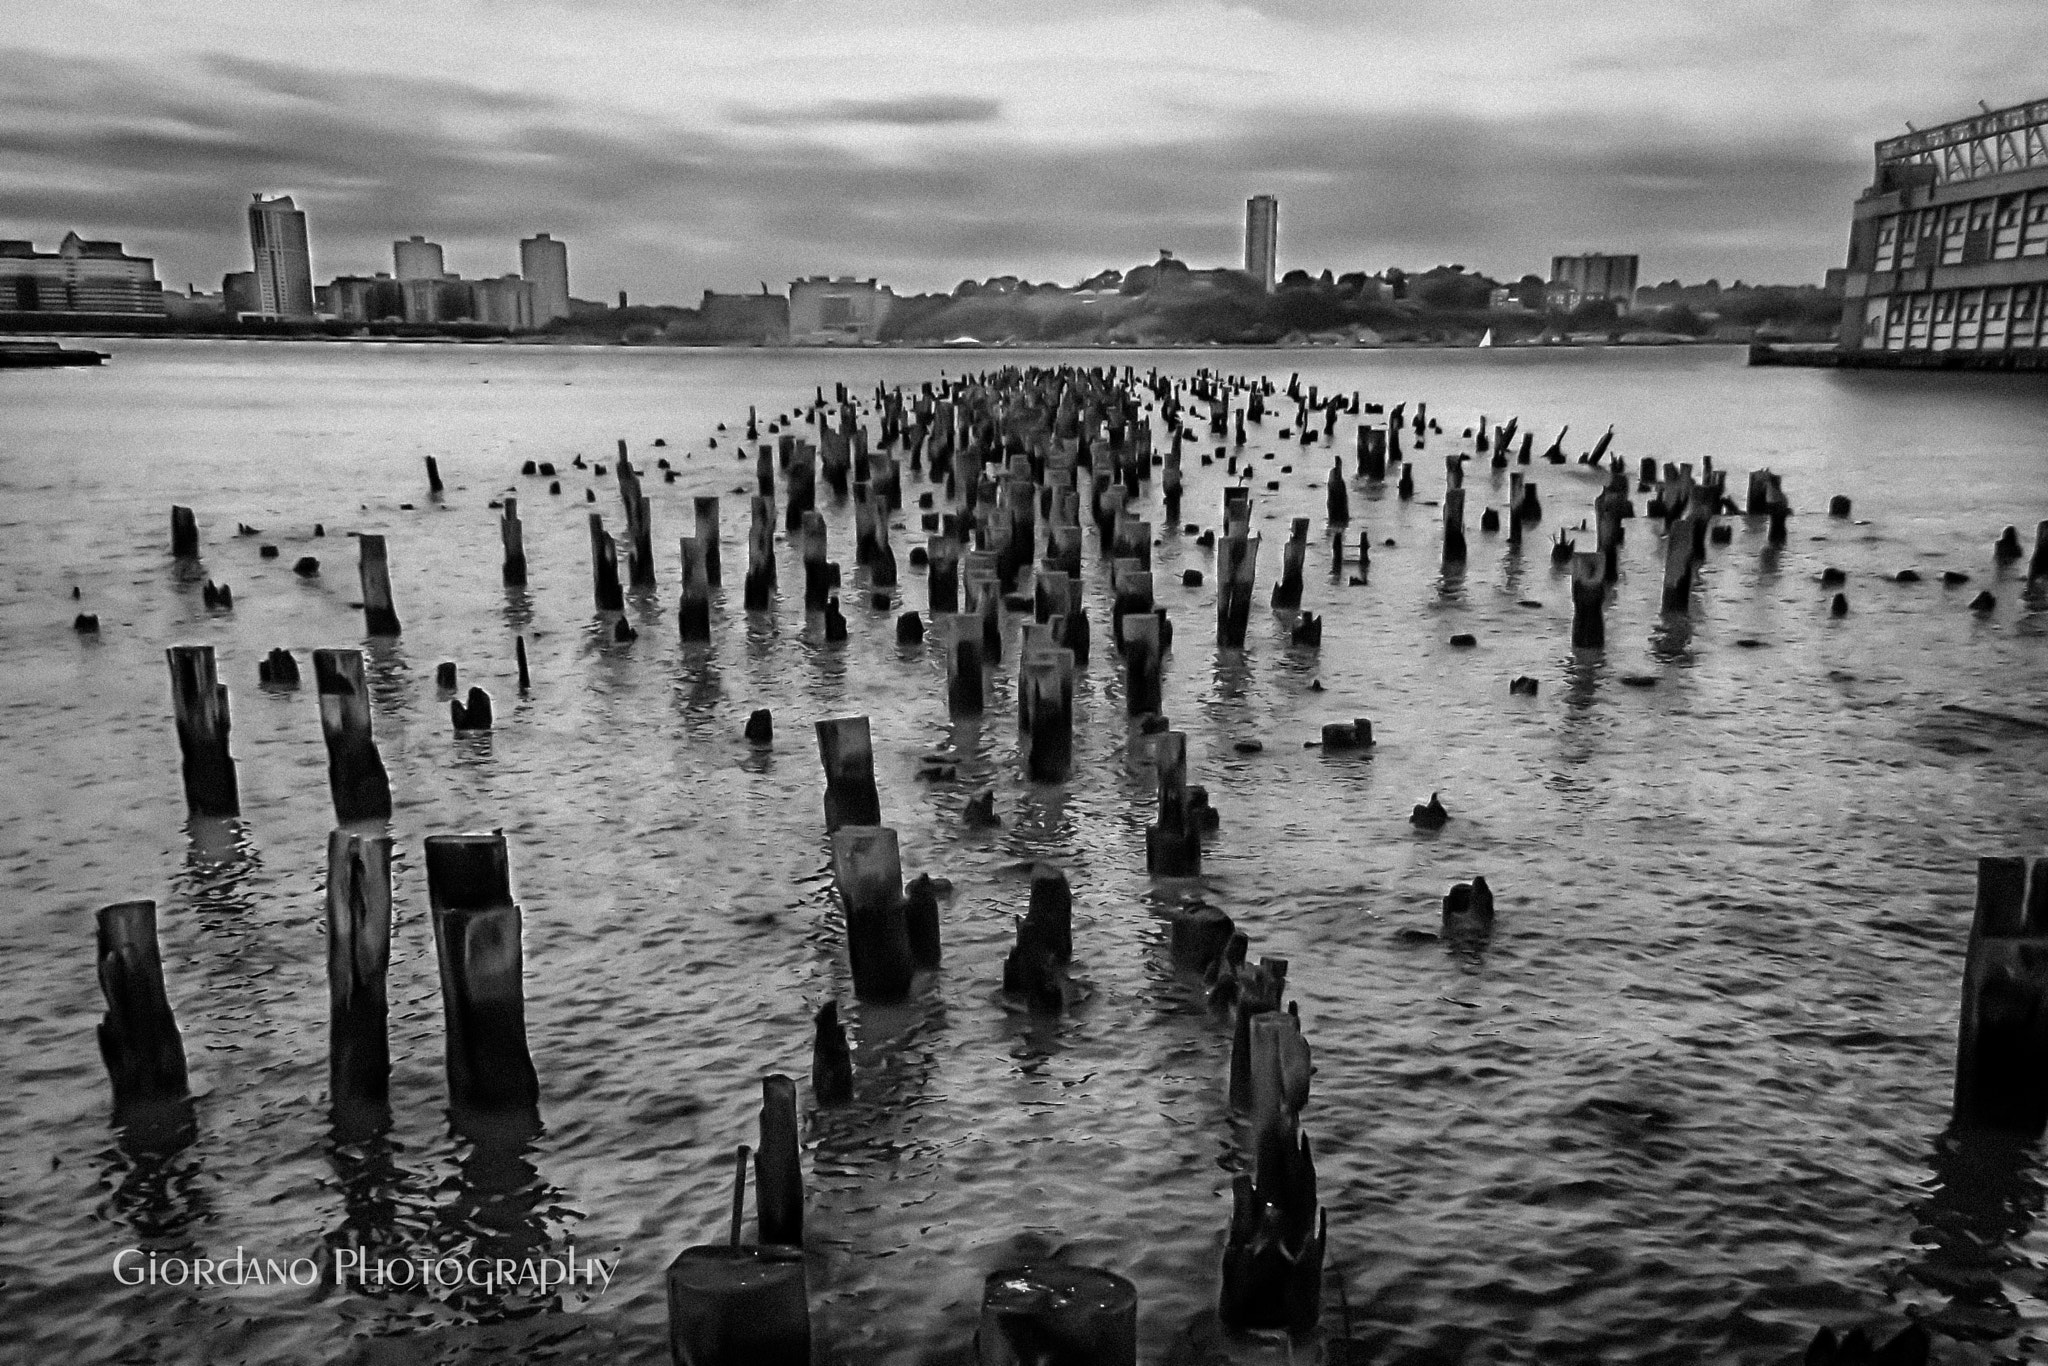 Photograph Pier 54 by Vincenzo Giordano on 500px